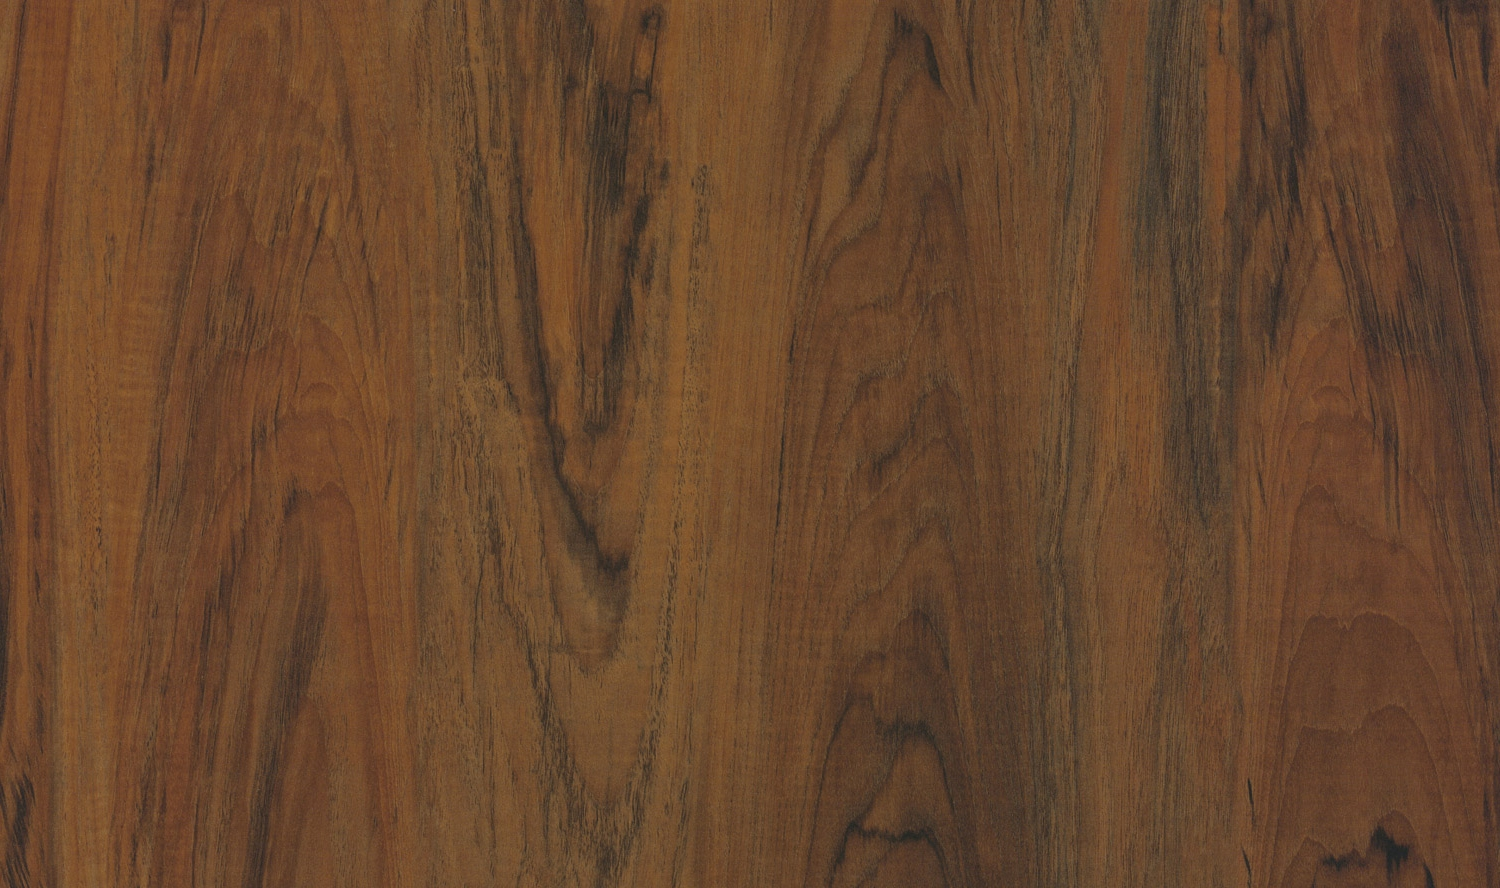 1MM International Latest Laminate Designs - Sundek International